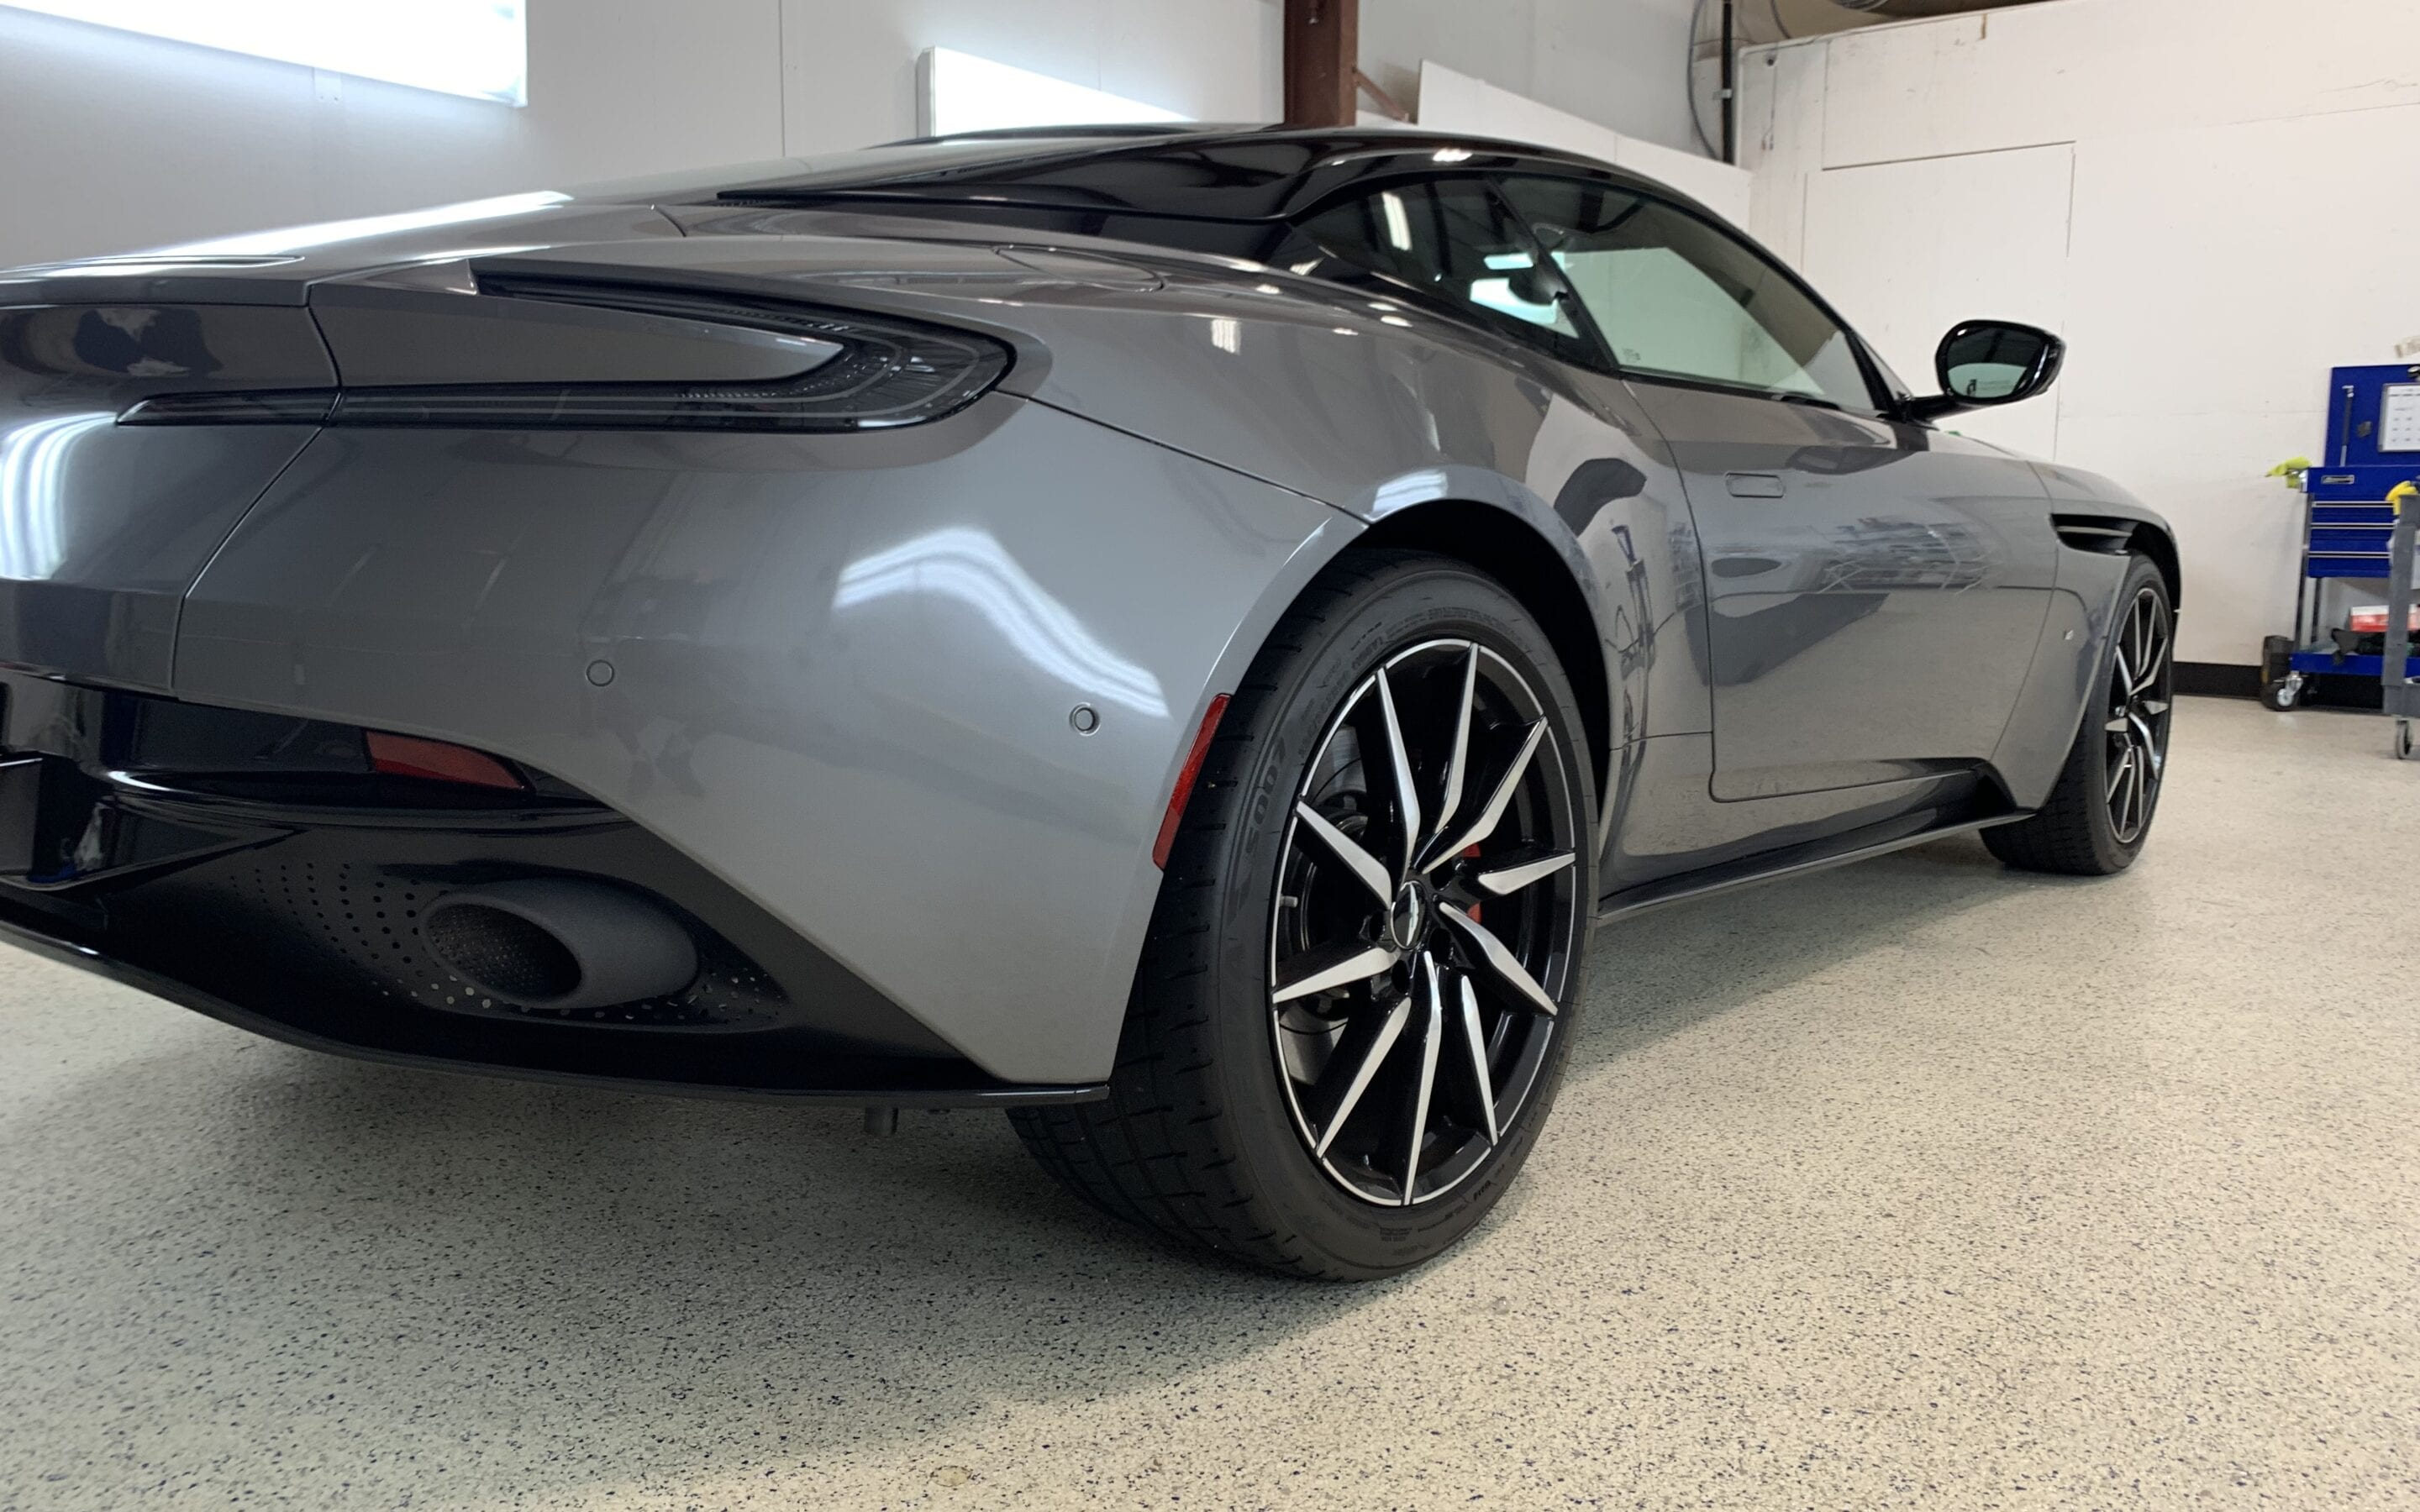 New Car Preparation of a 2020 Aston Martin DB11